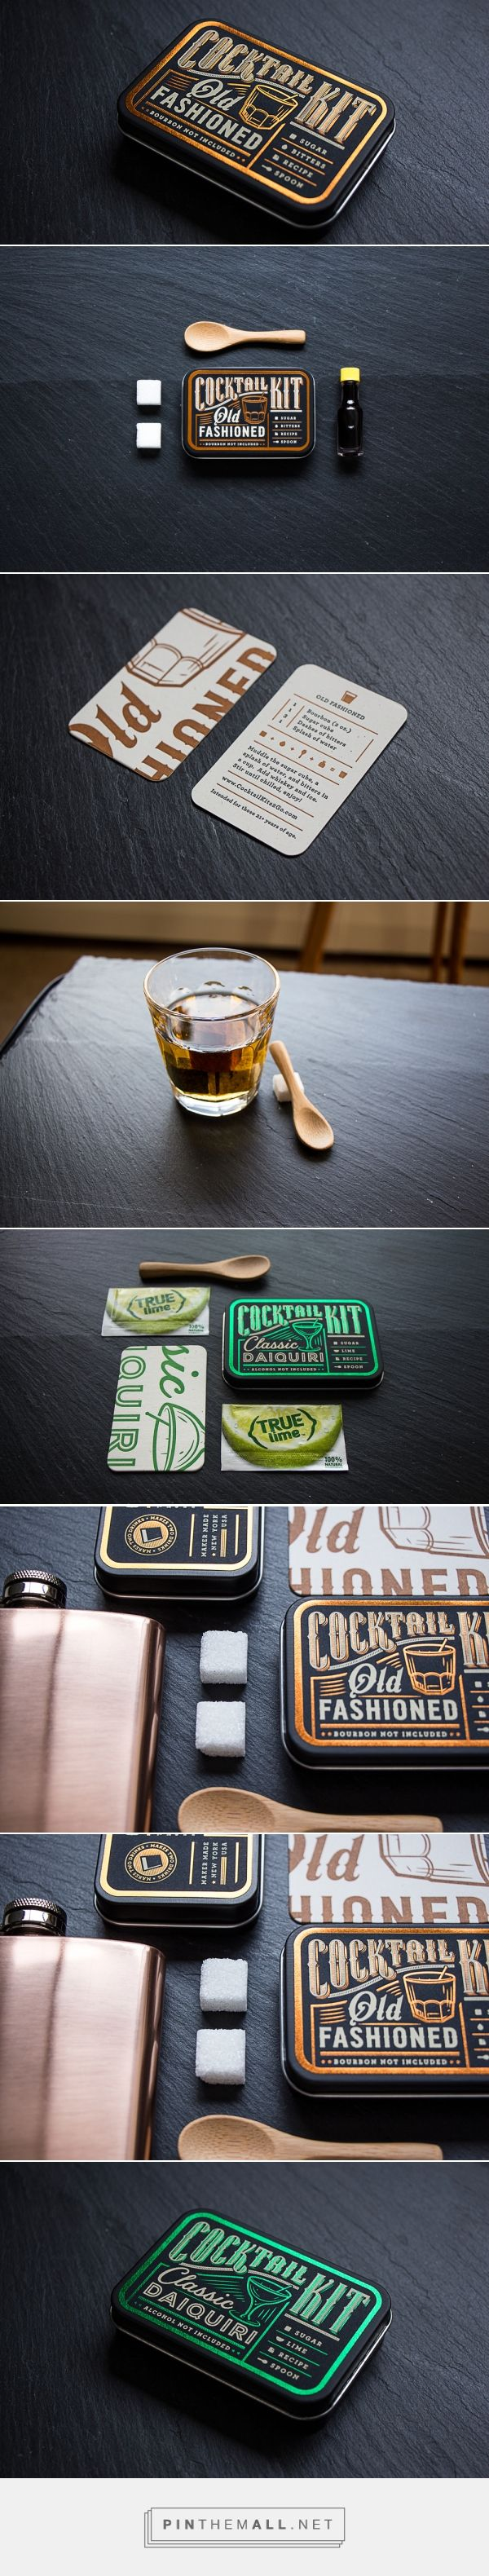 Cocktail Kits — The Dieline - Branding & Packaging - created via http://pinthemall.net